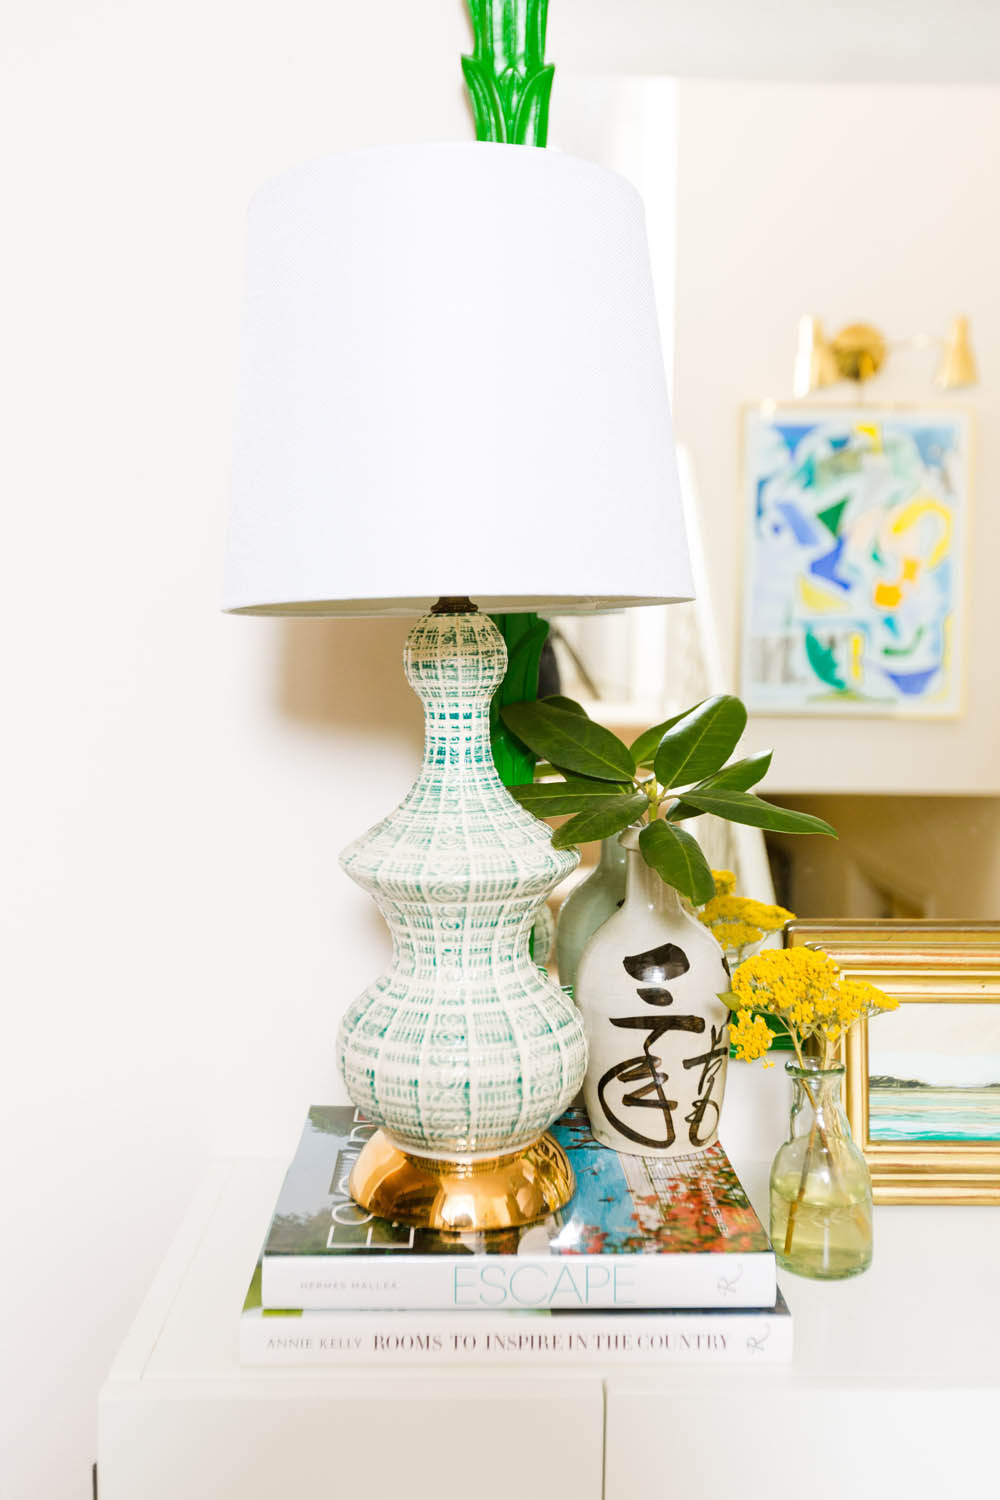 Image of lamp and art in entry way styled by Amanda Louise Interiors by photographers in greenville sc